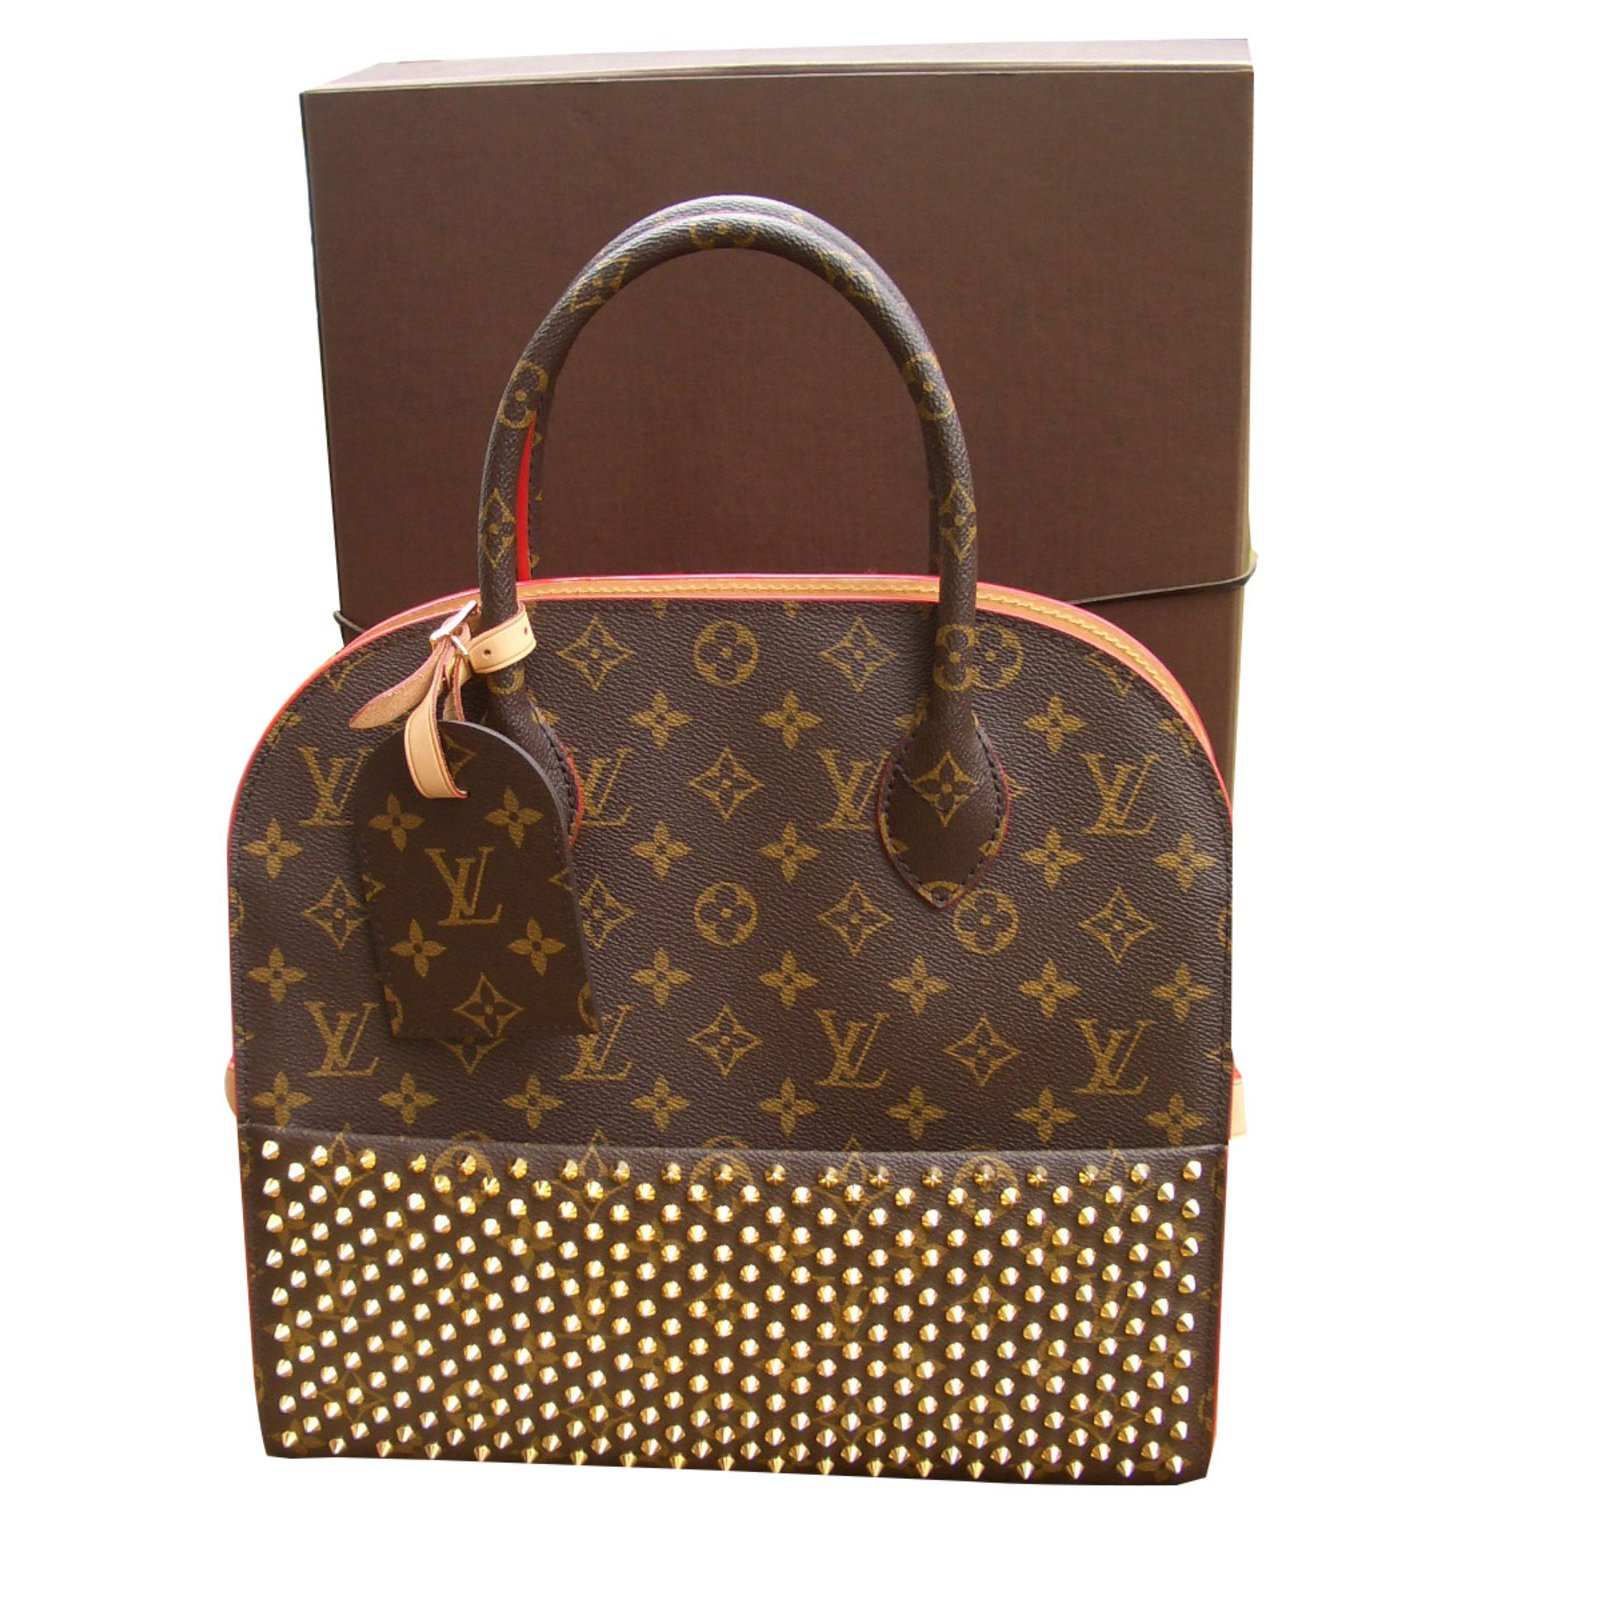 Sacs à main Louis Vuitton shopping bag Cuir Multicolore ref.72683 ... e1542eee45c